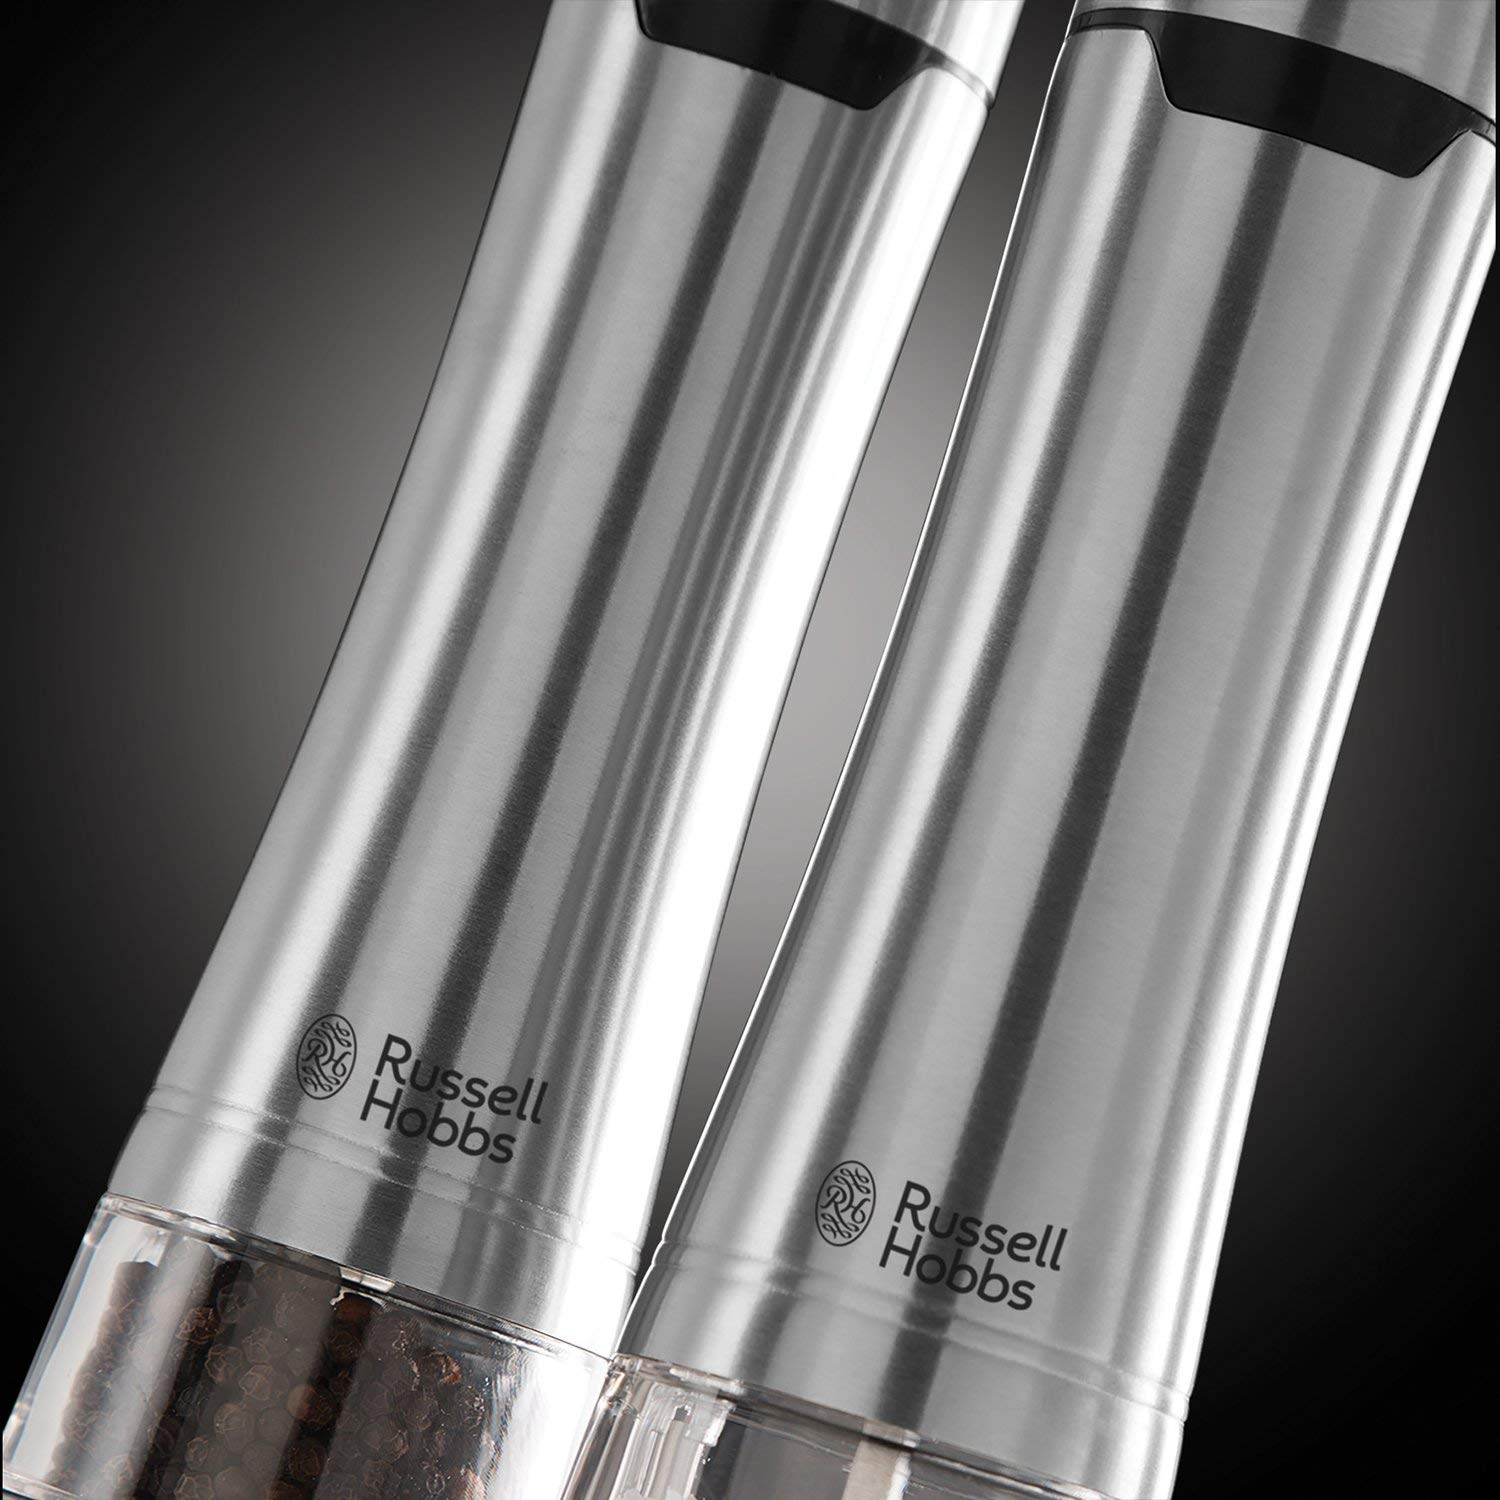 Russell Hobbs Battery Powered Salt & Pepper Grinders – Stainless Steel and Silver 2